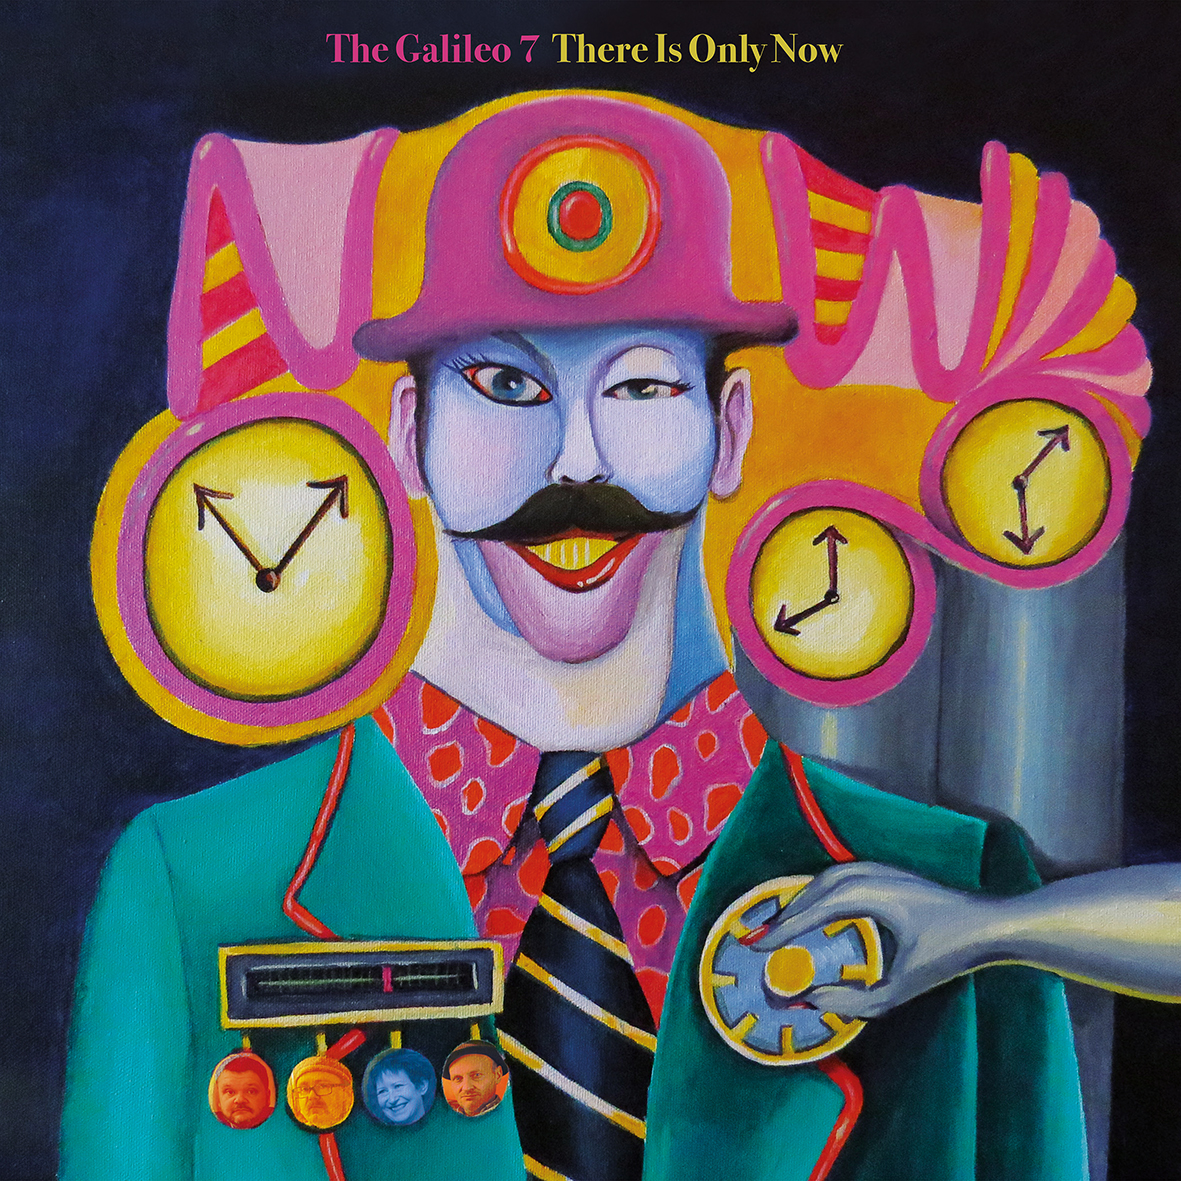 The Galileo 7 - There Is Only Now 1 - fanzine